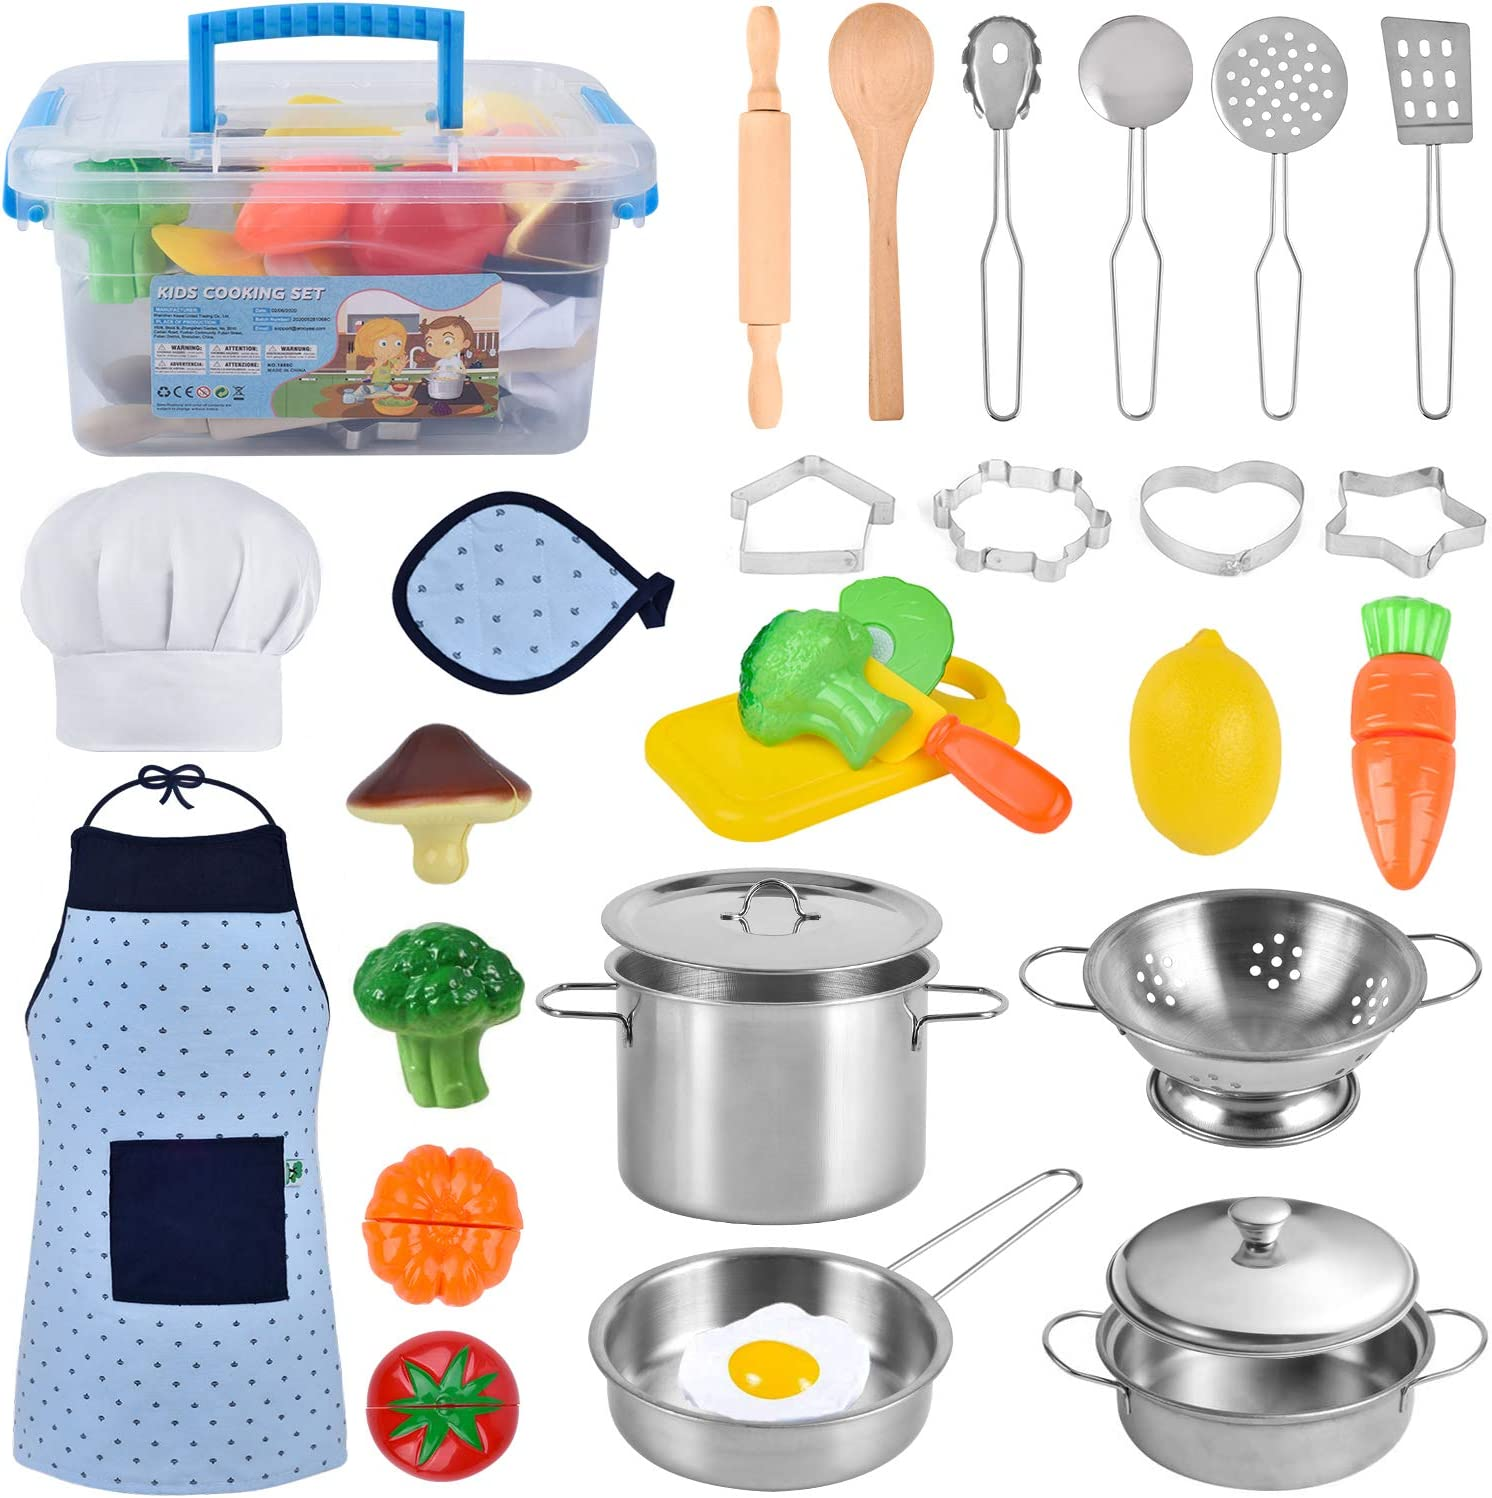 COSILY Kitchen Pretend Play Toys, Kids Cooking and Baking Set with Stainless Steel Cookware Pots and Pans Set, Cooking Utensils, Apron & Chef Hat, Cupcake Moulds, Cutting Vegetables for Boys and Girls